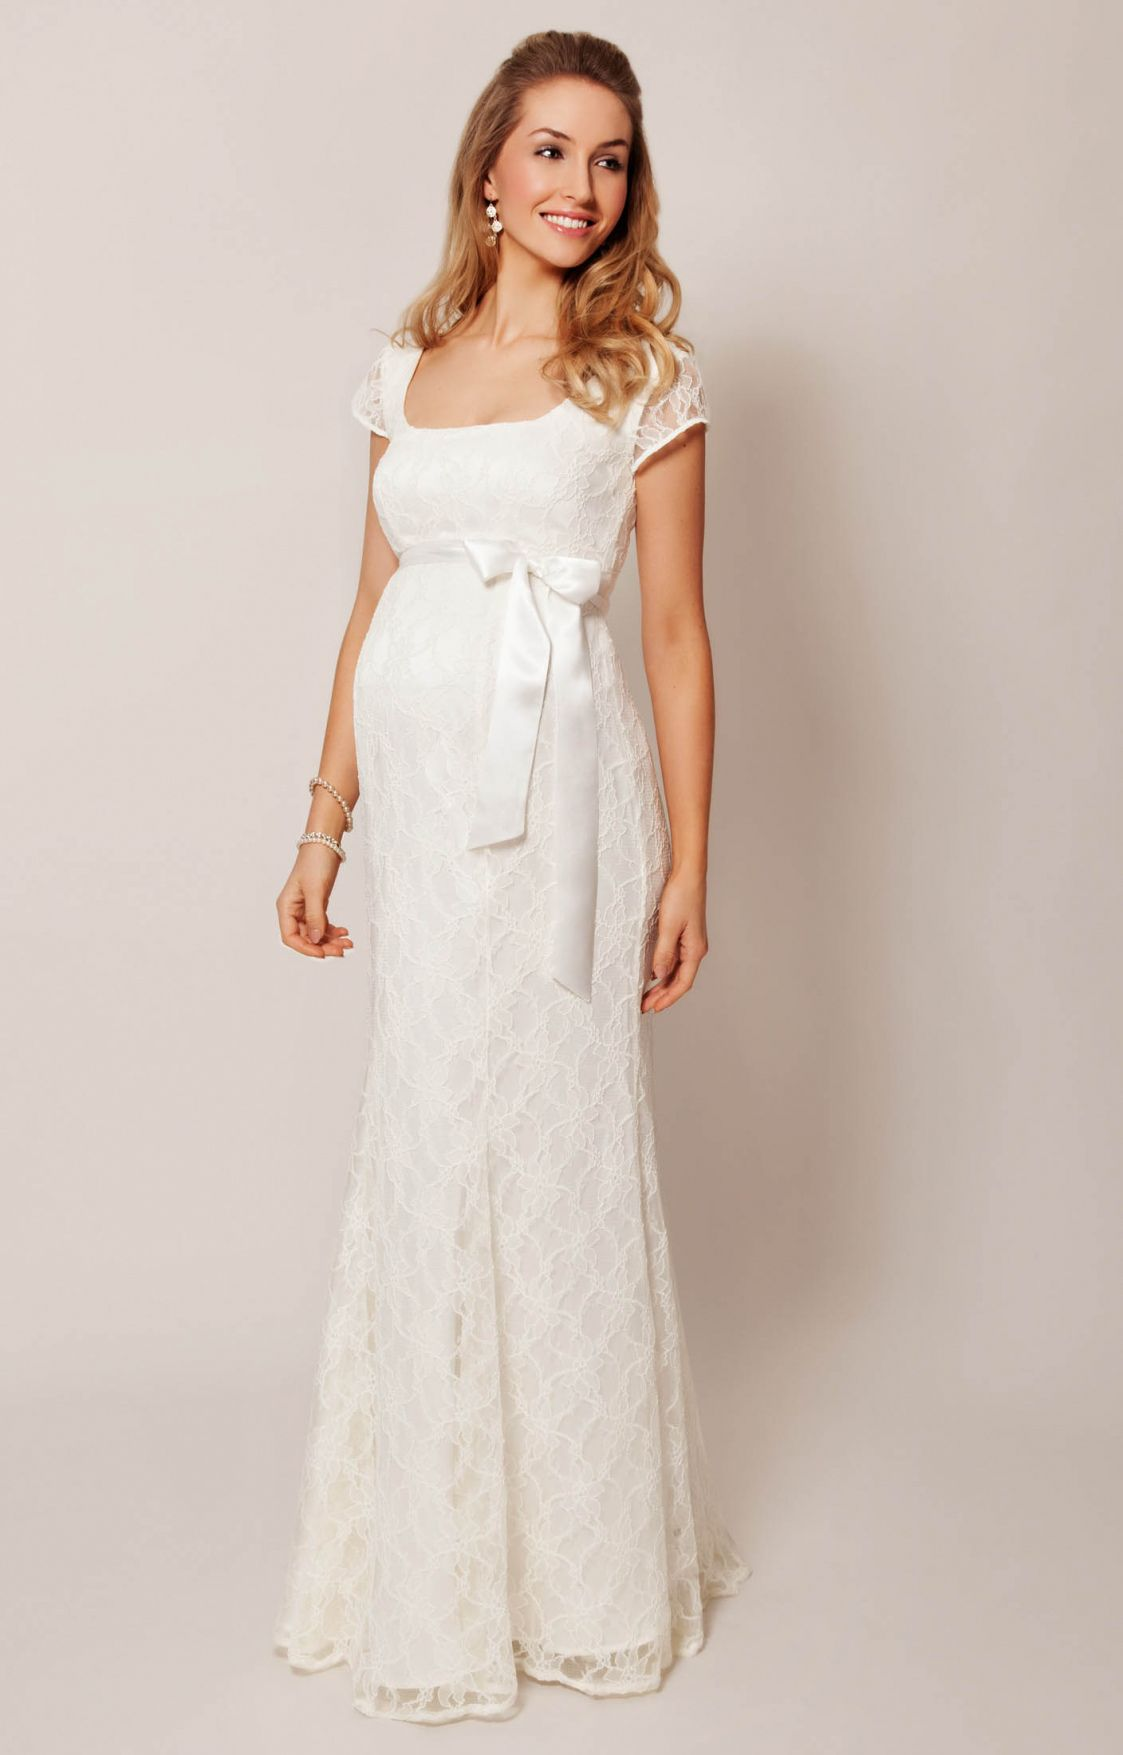 Country dresses for weddings   Lace Maternity Wedding Dress  Country Dresses for Weddings